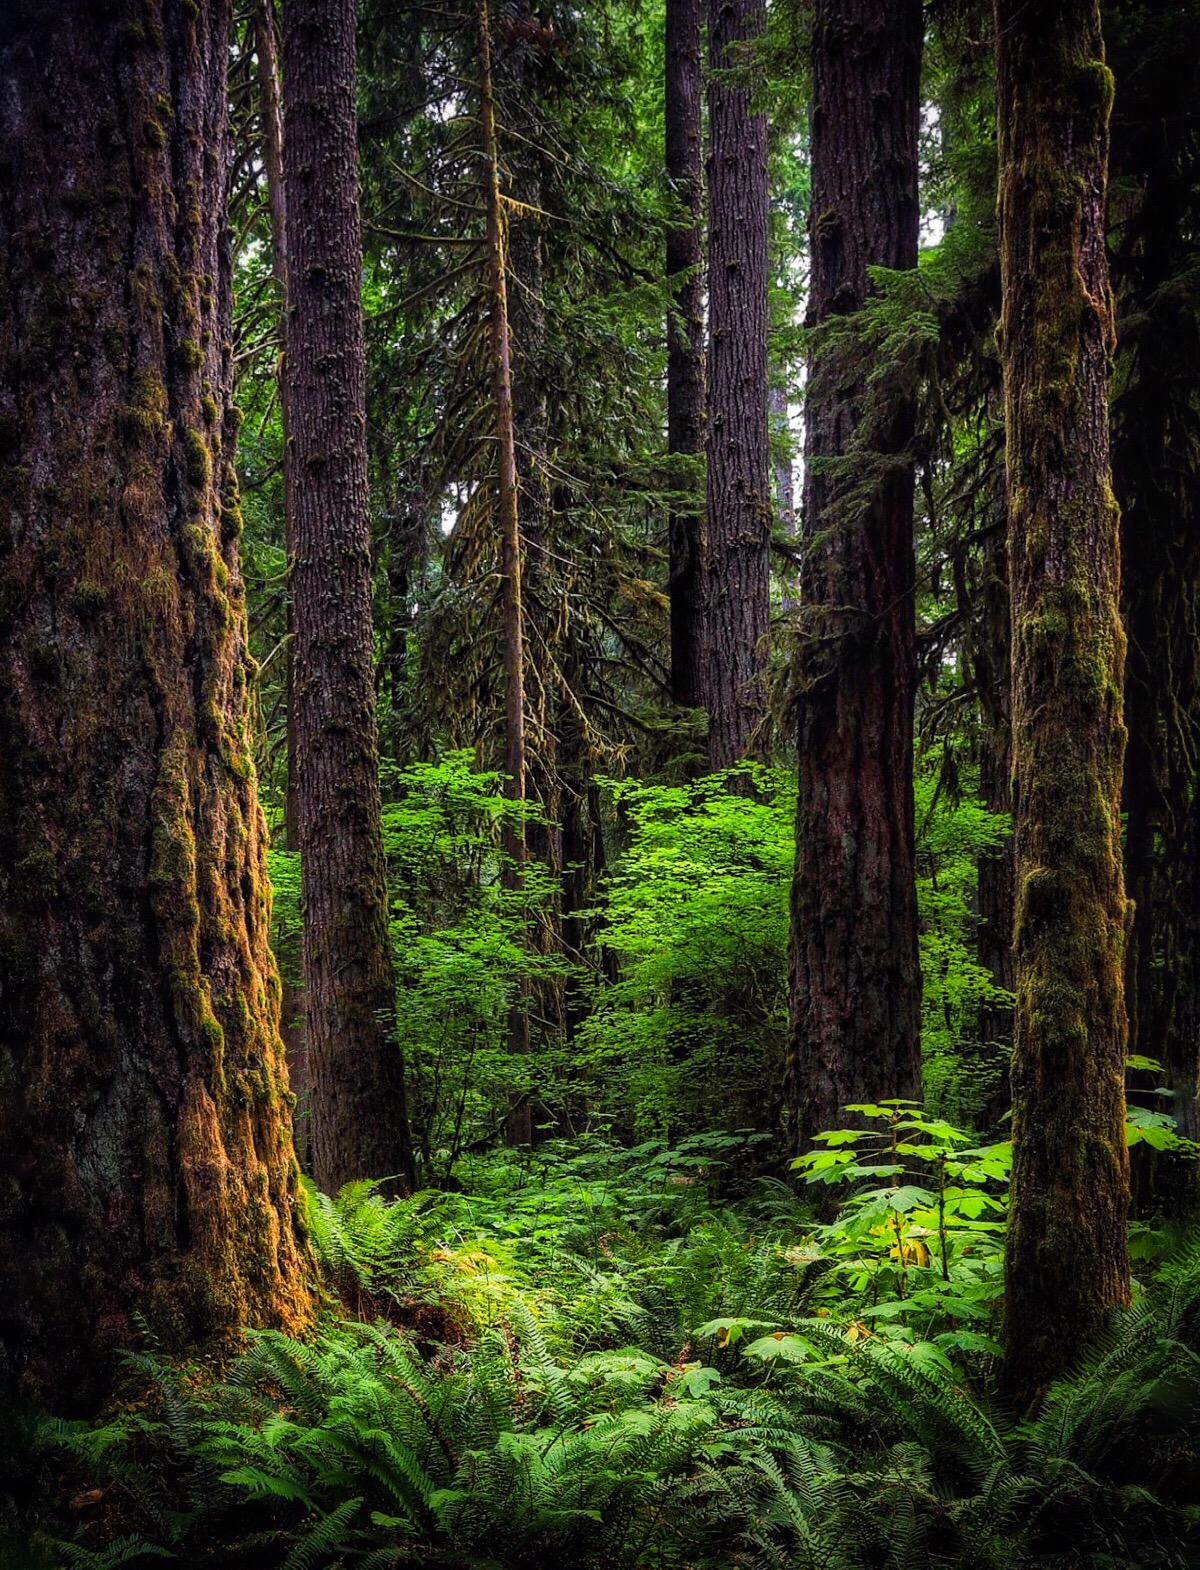 Rain forest in the Cascades